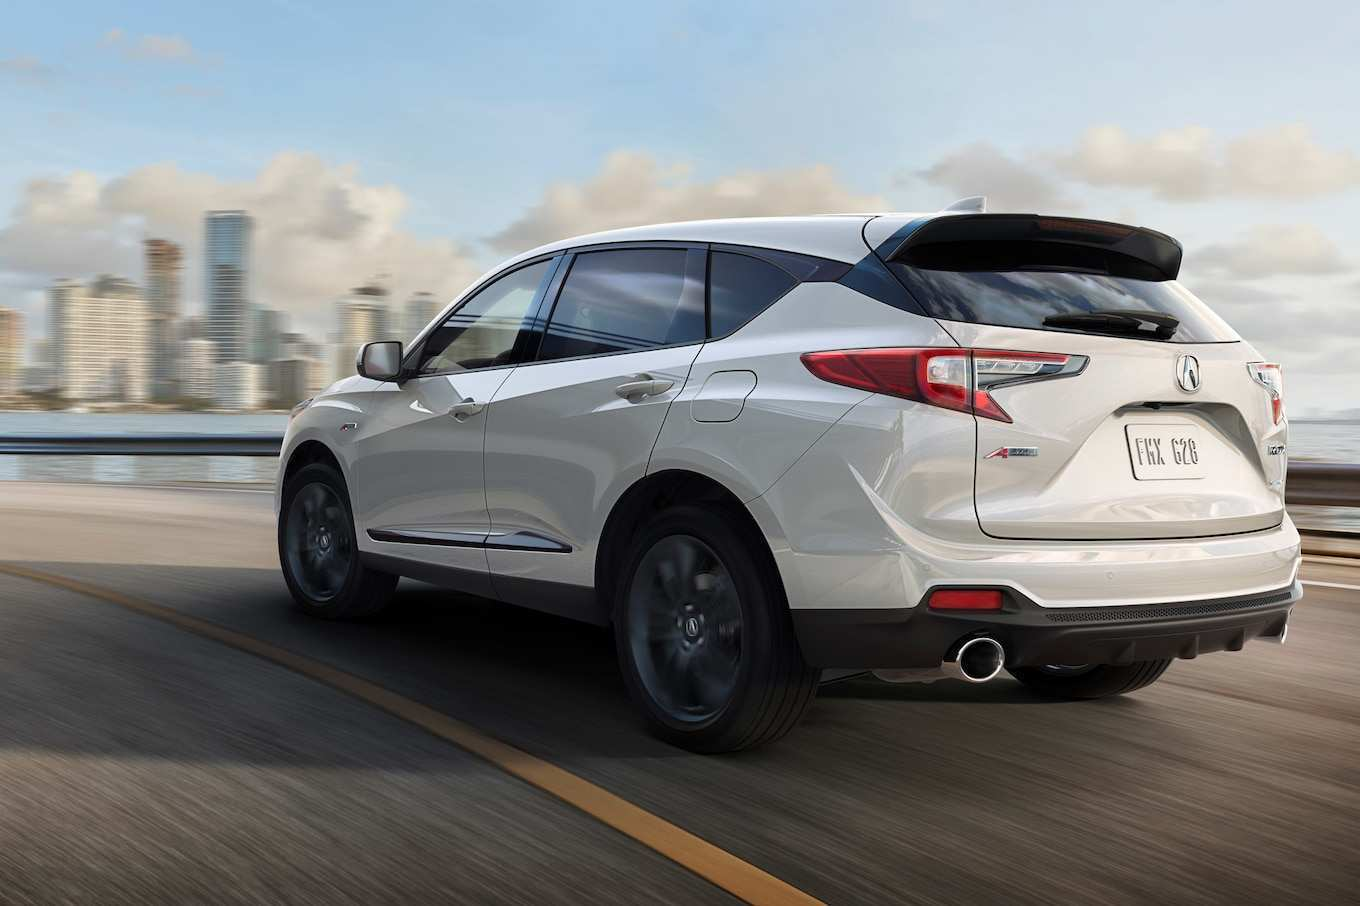 75 All New 2019 Acura Zdx Overview for 2019 Acura Zdx